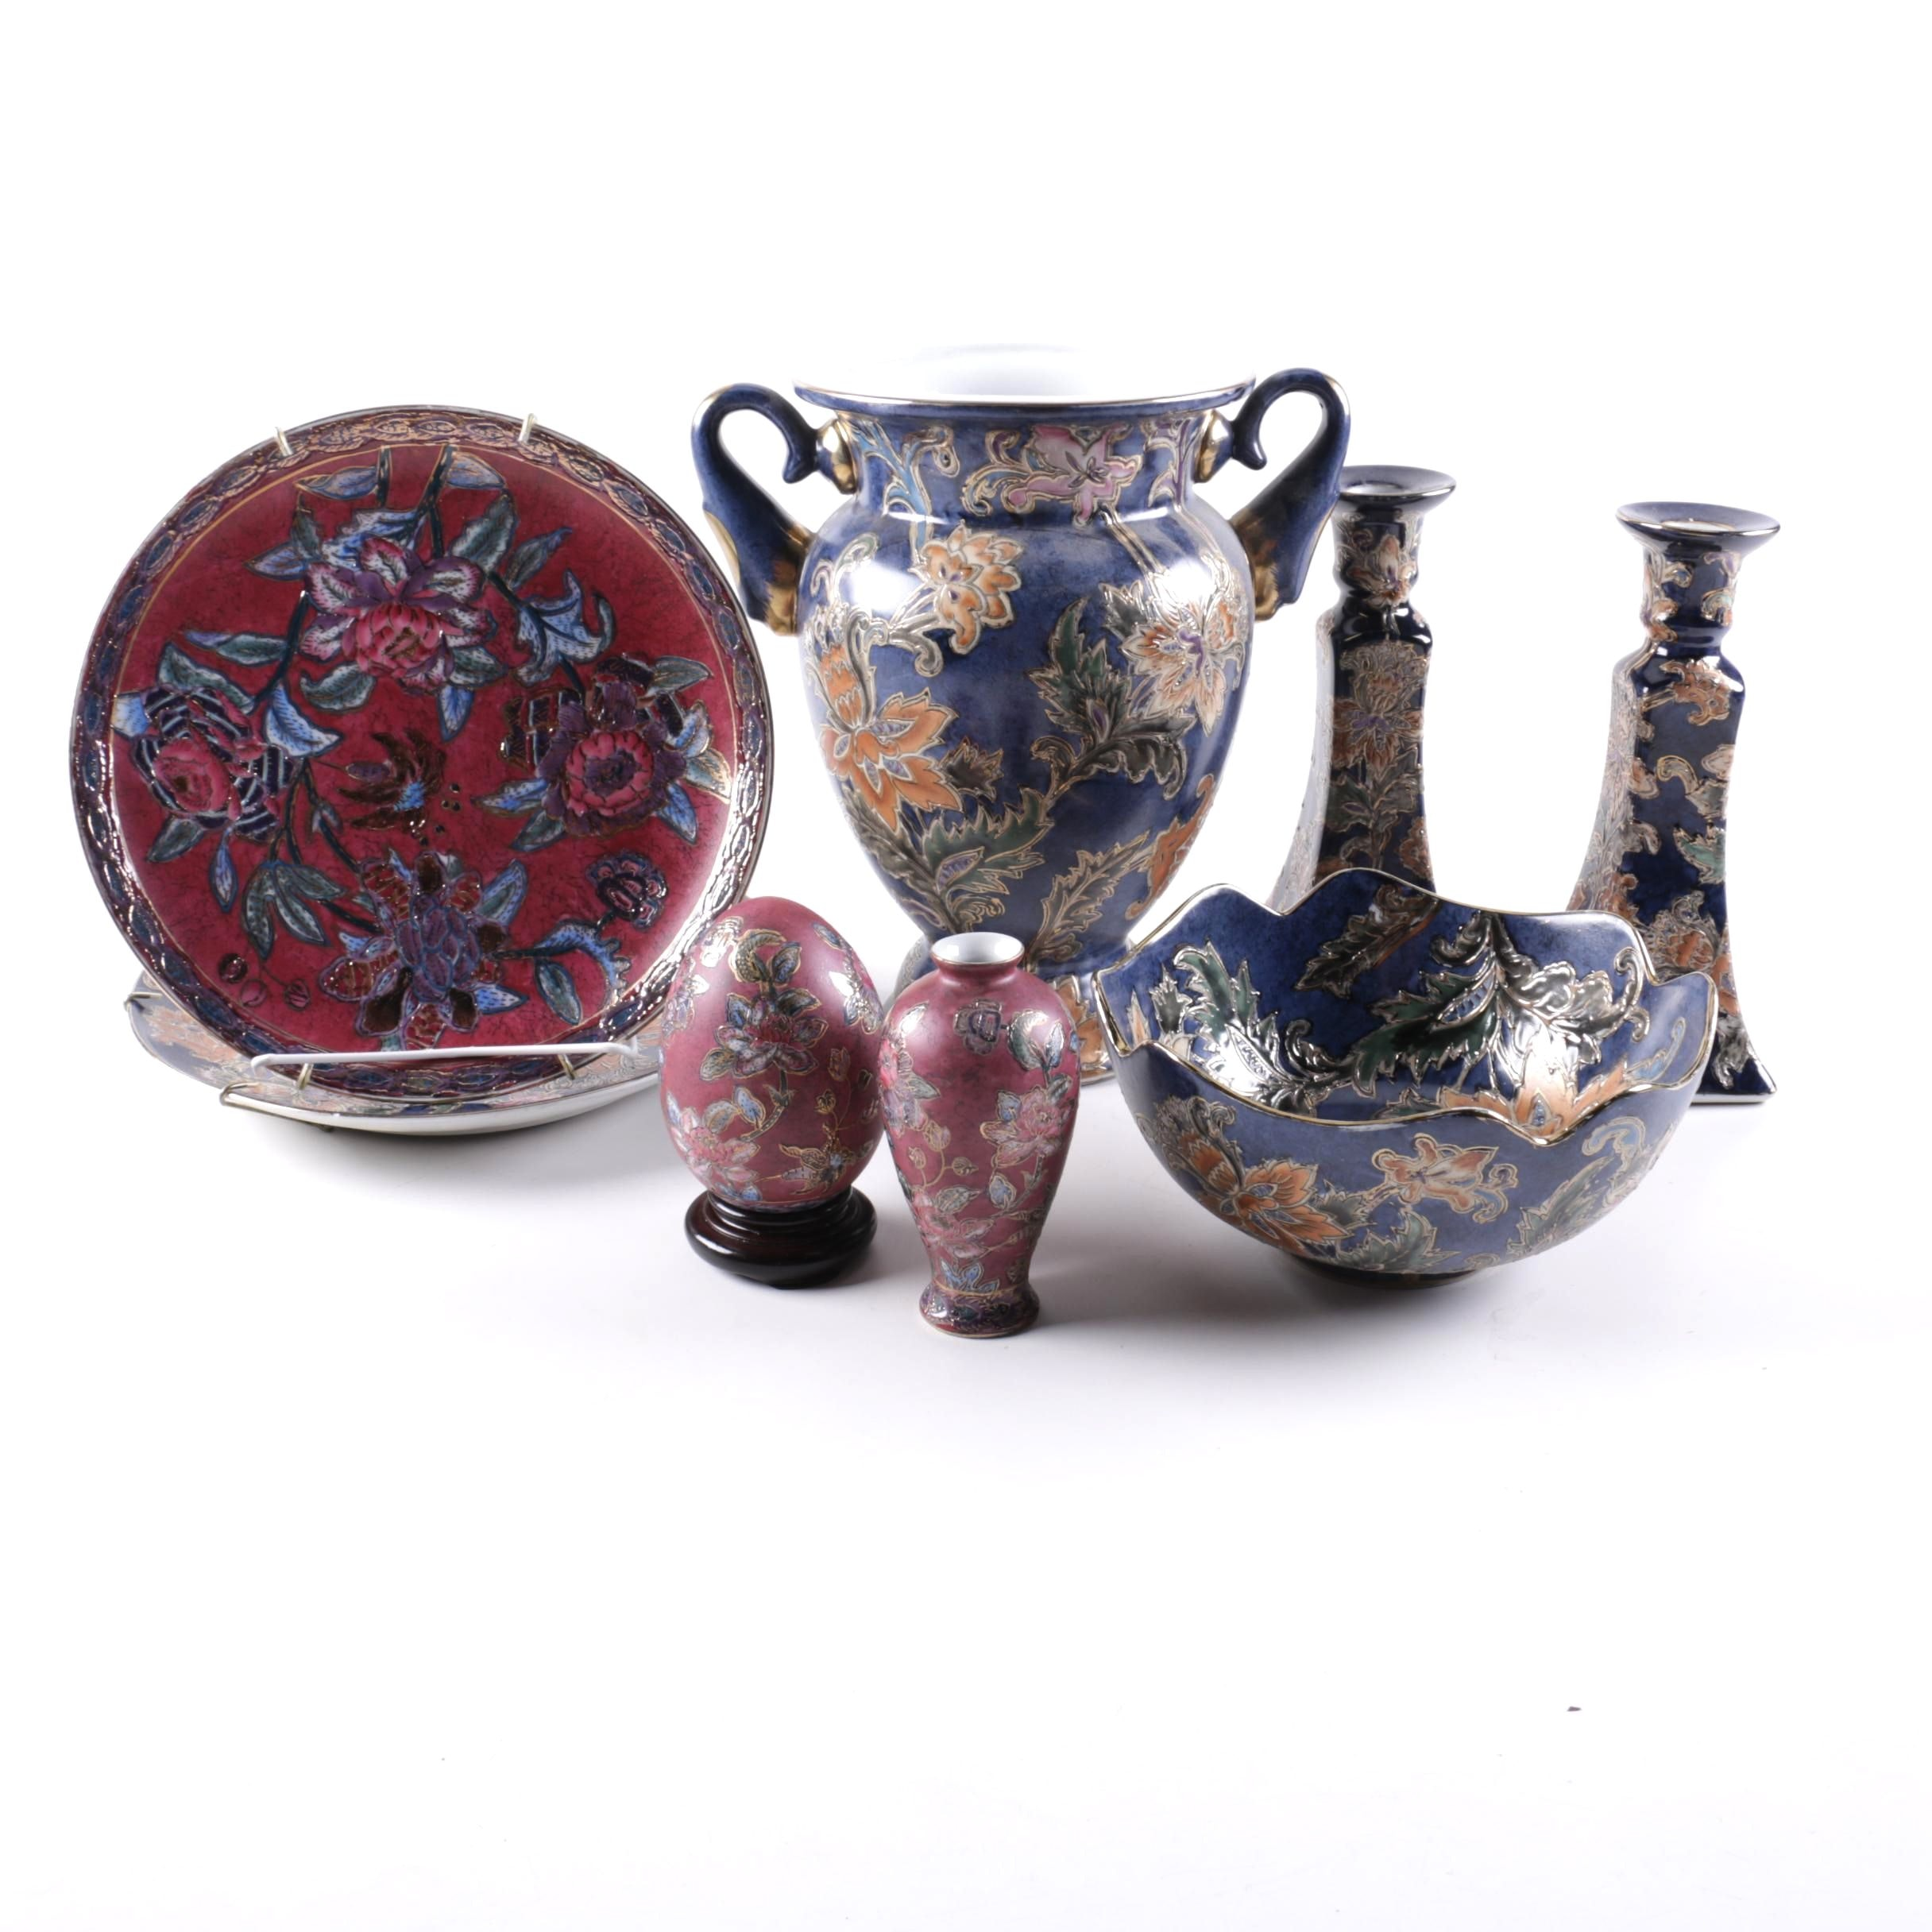 Grouping of Handpainted Ceramic Vessels